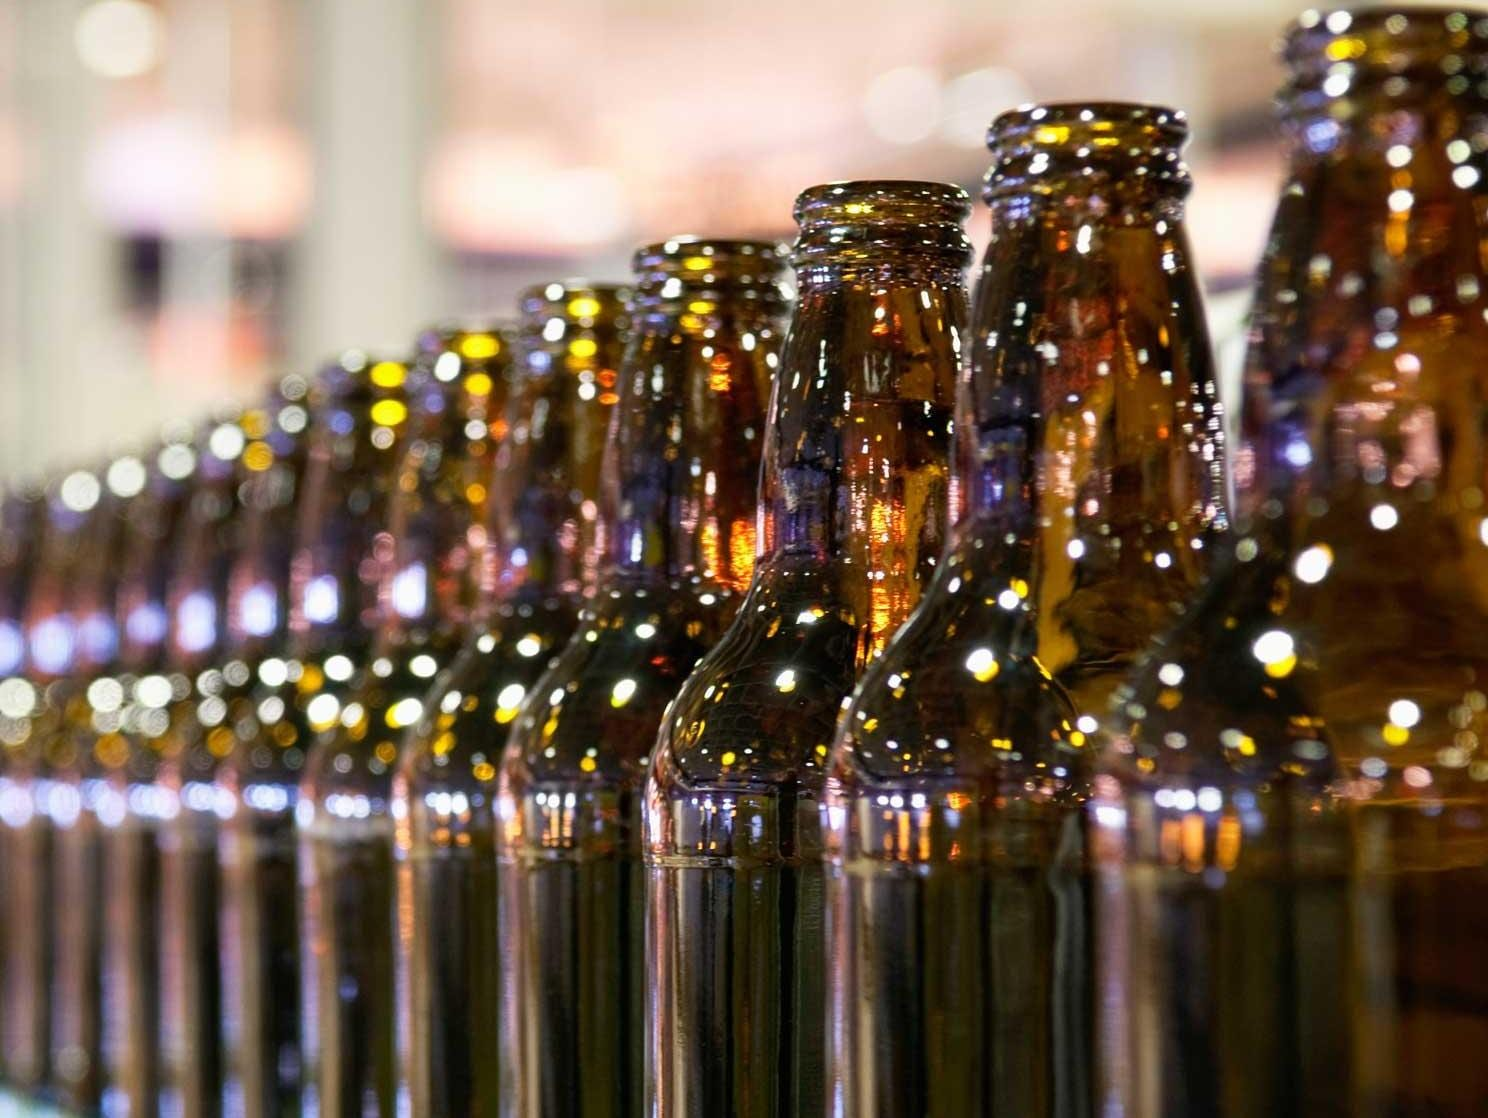 99 bottles of beer in the production line